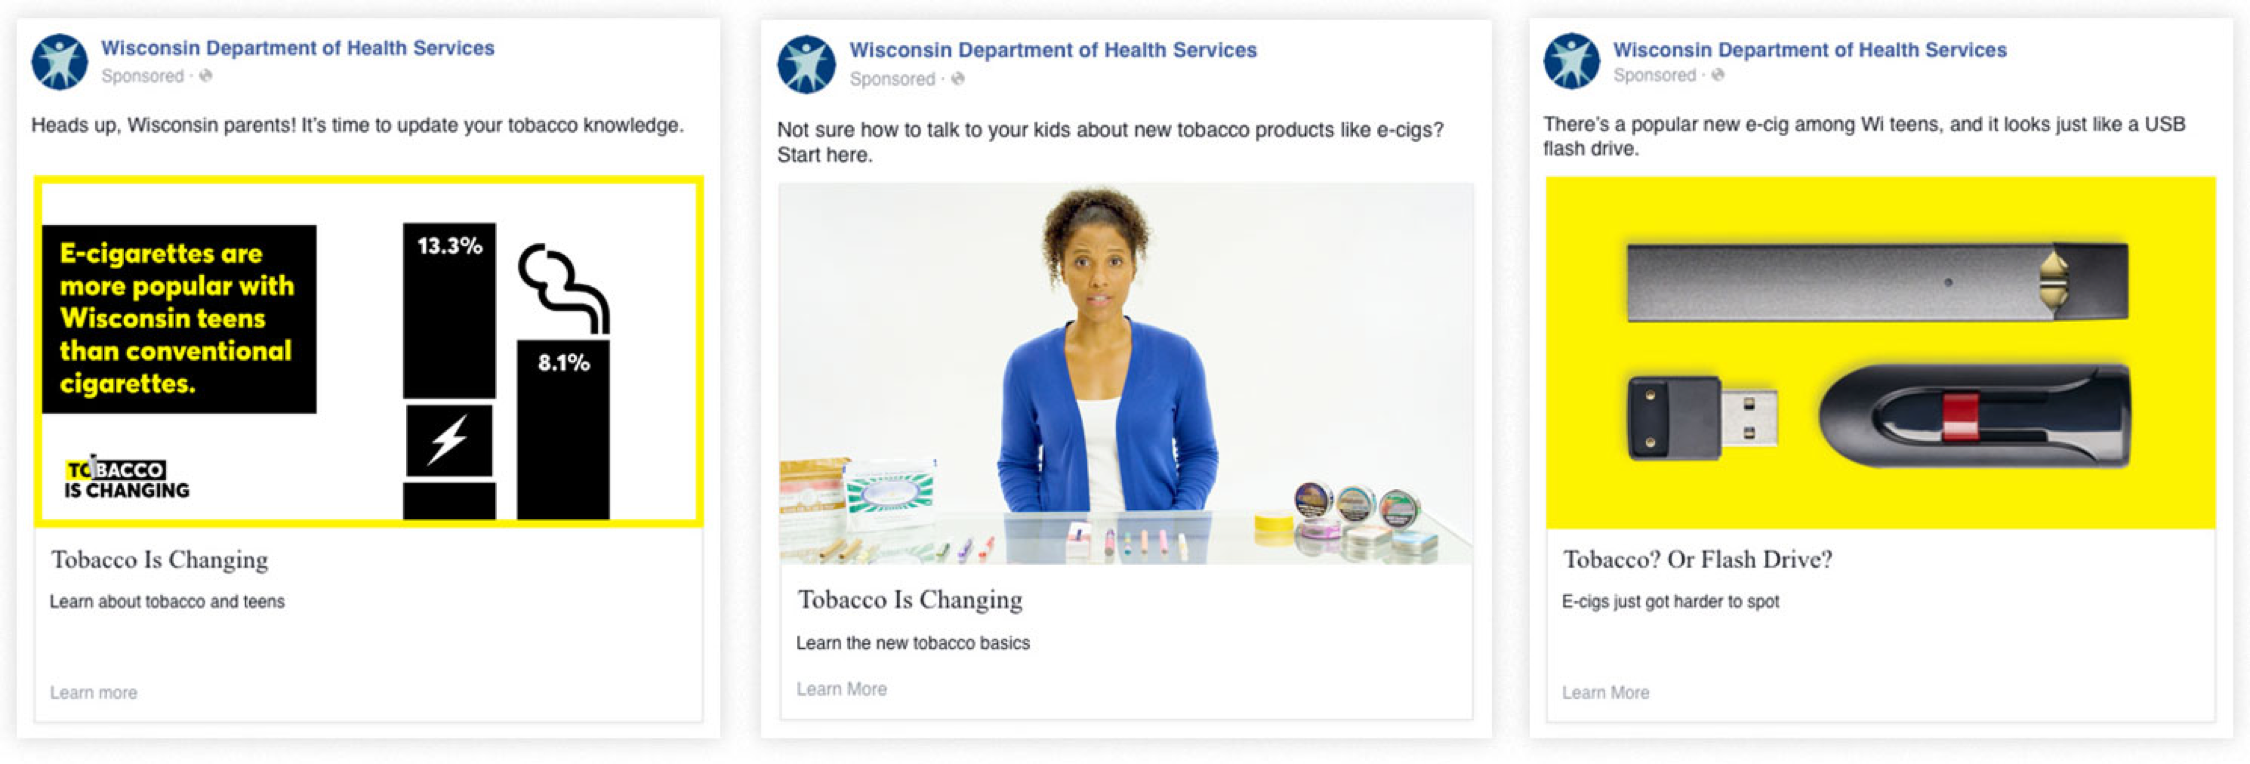 Three facebook posts side by side communicating changes in tabacco use